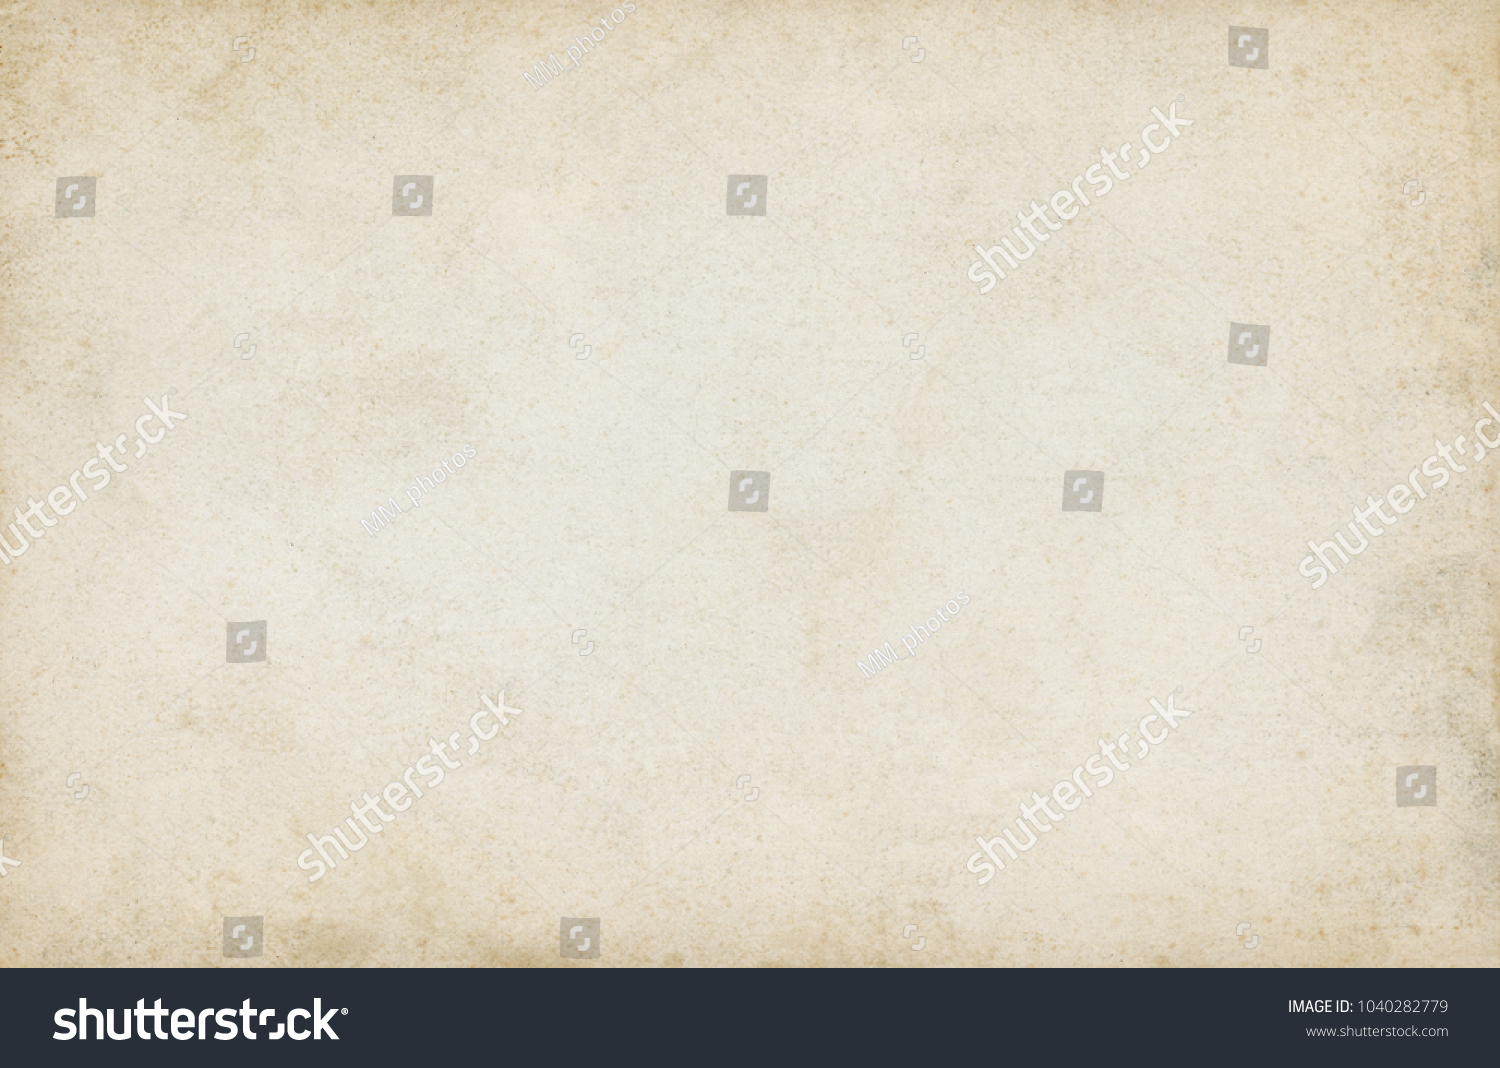 vintage paper texture background の写真素材 今すぐ編集